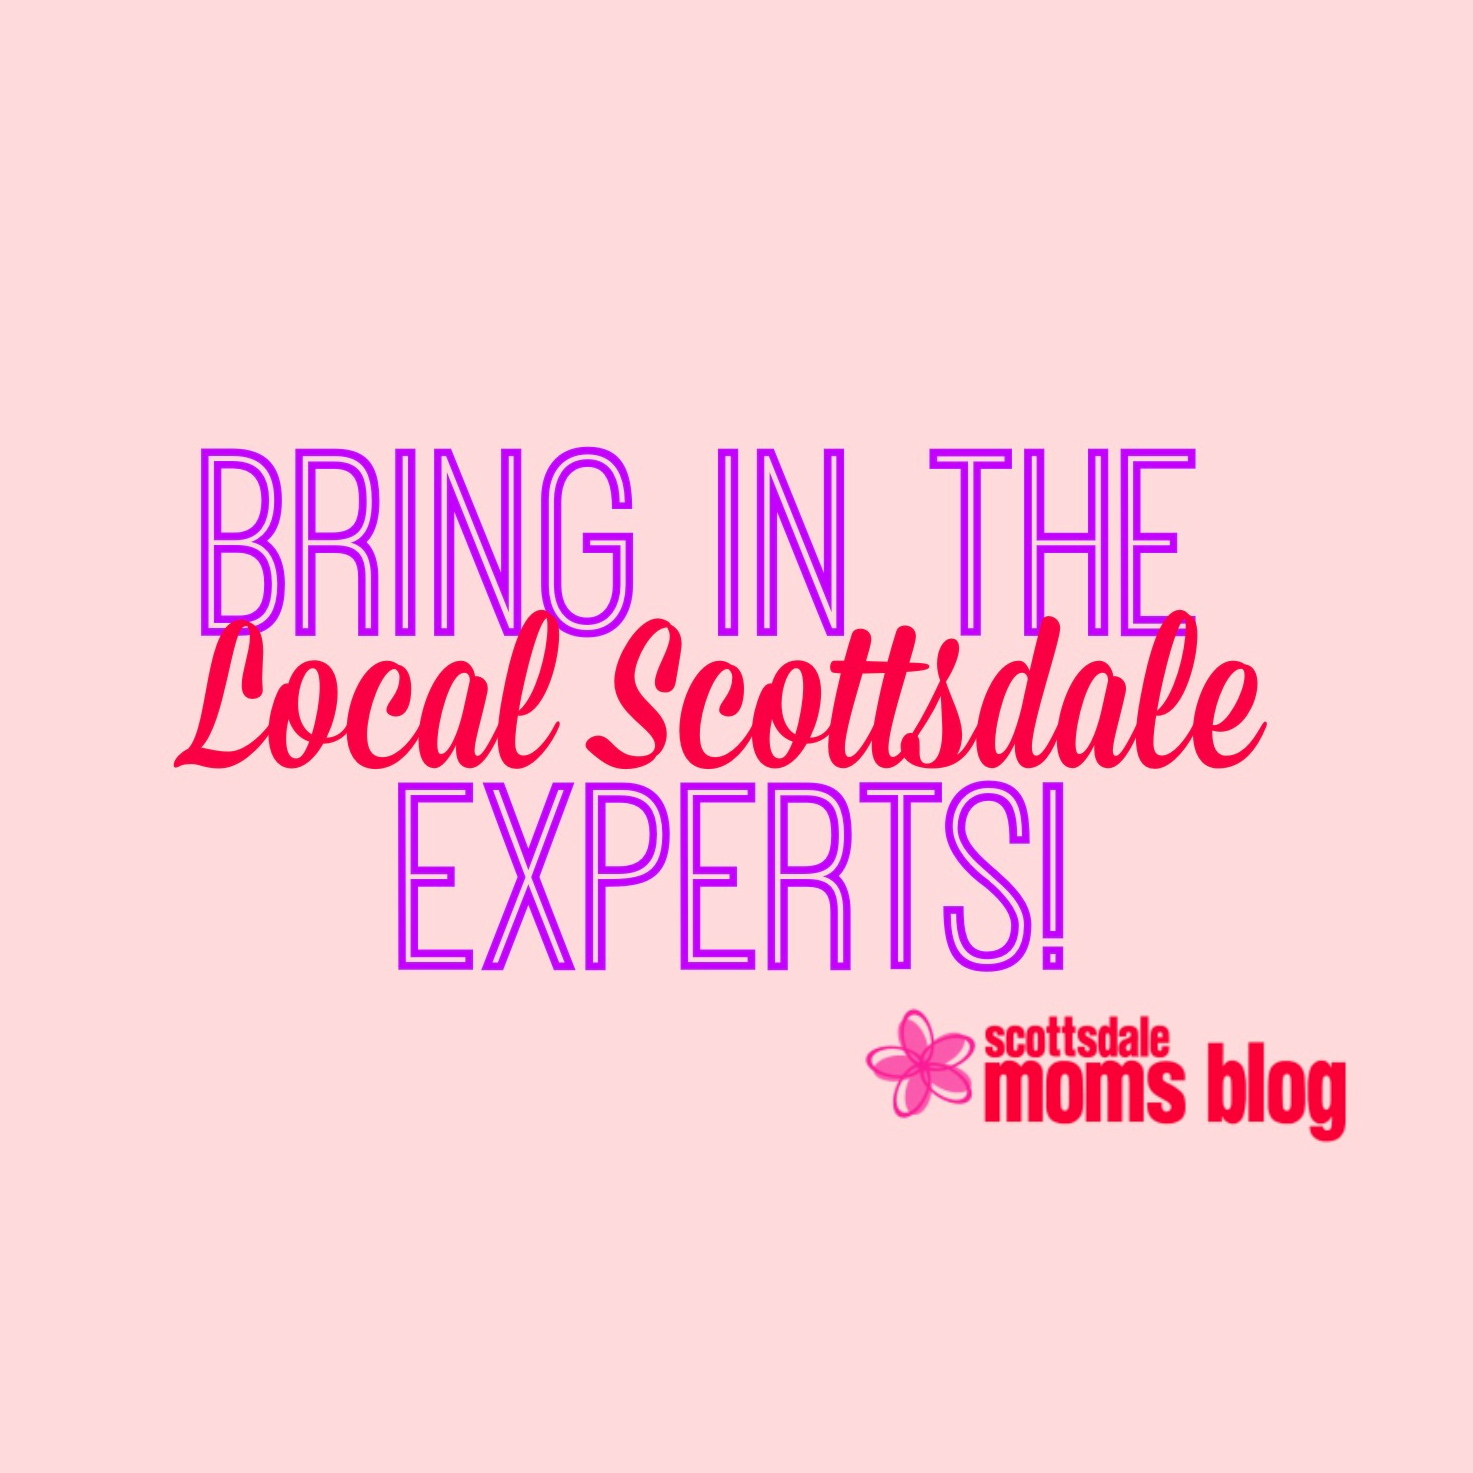 Scottsdale experts